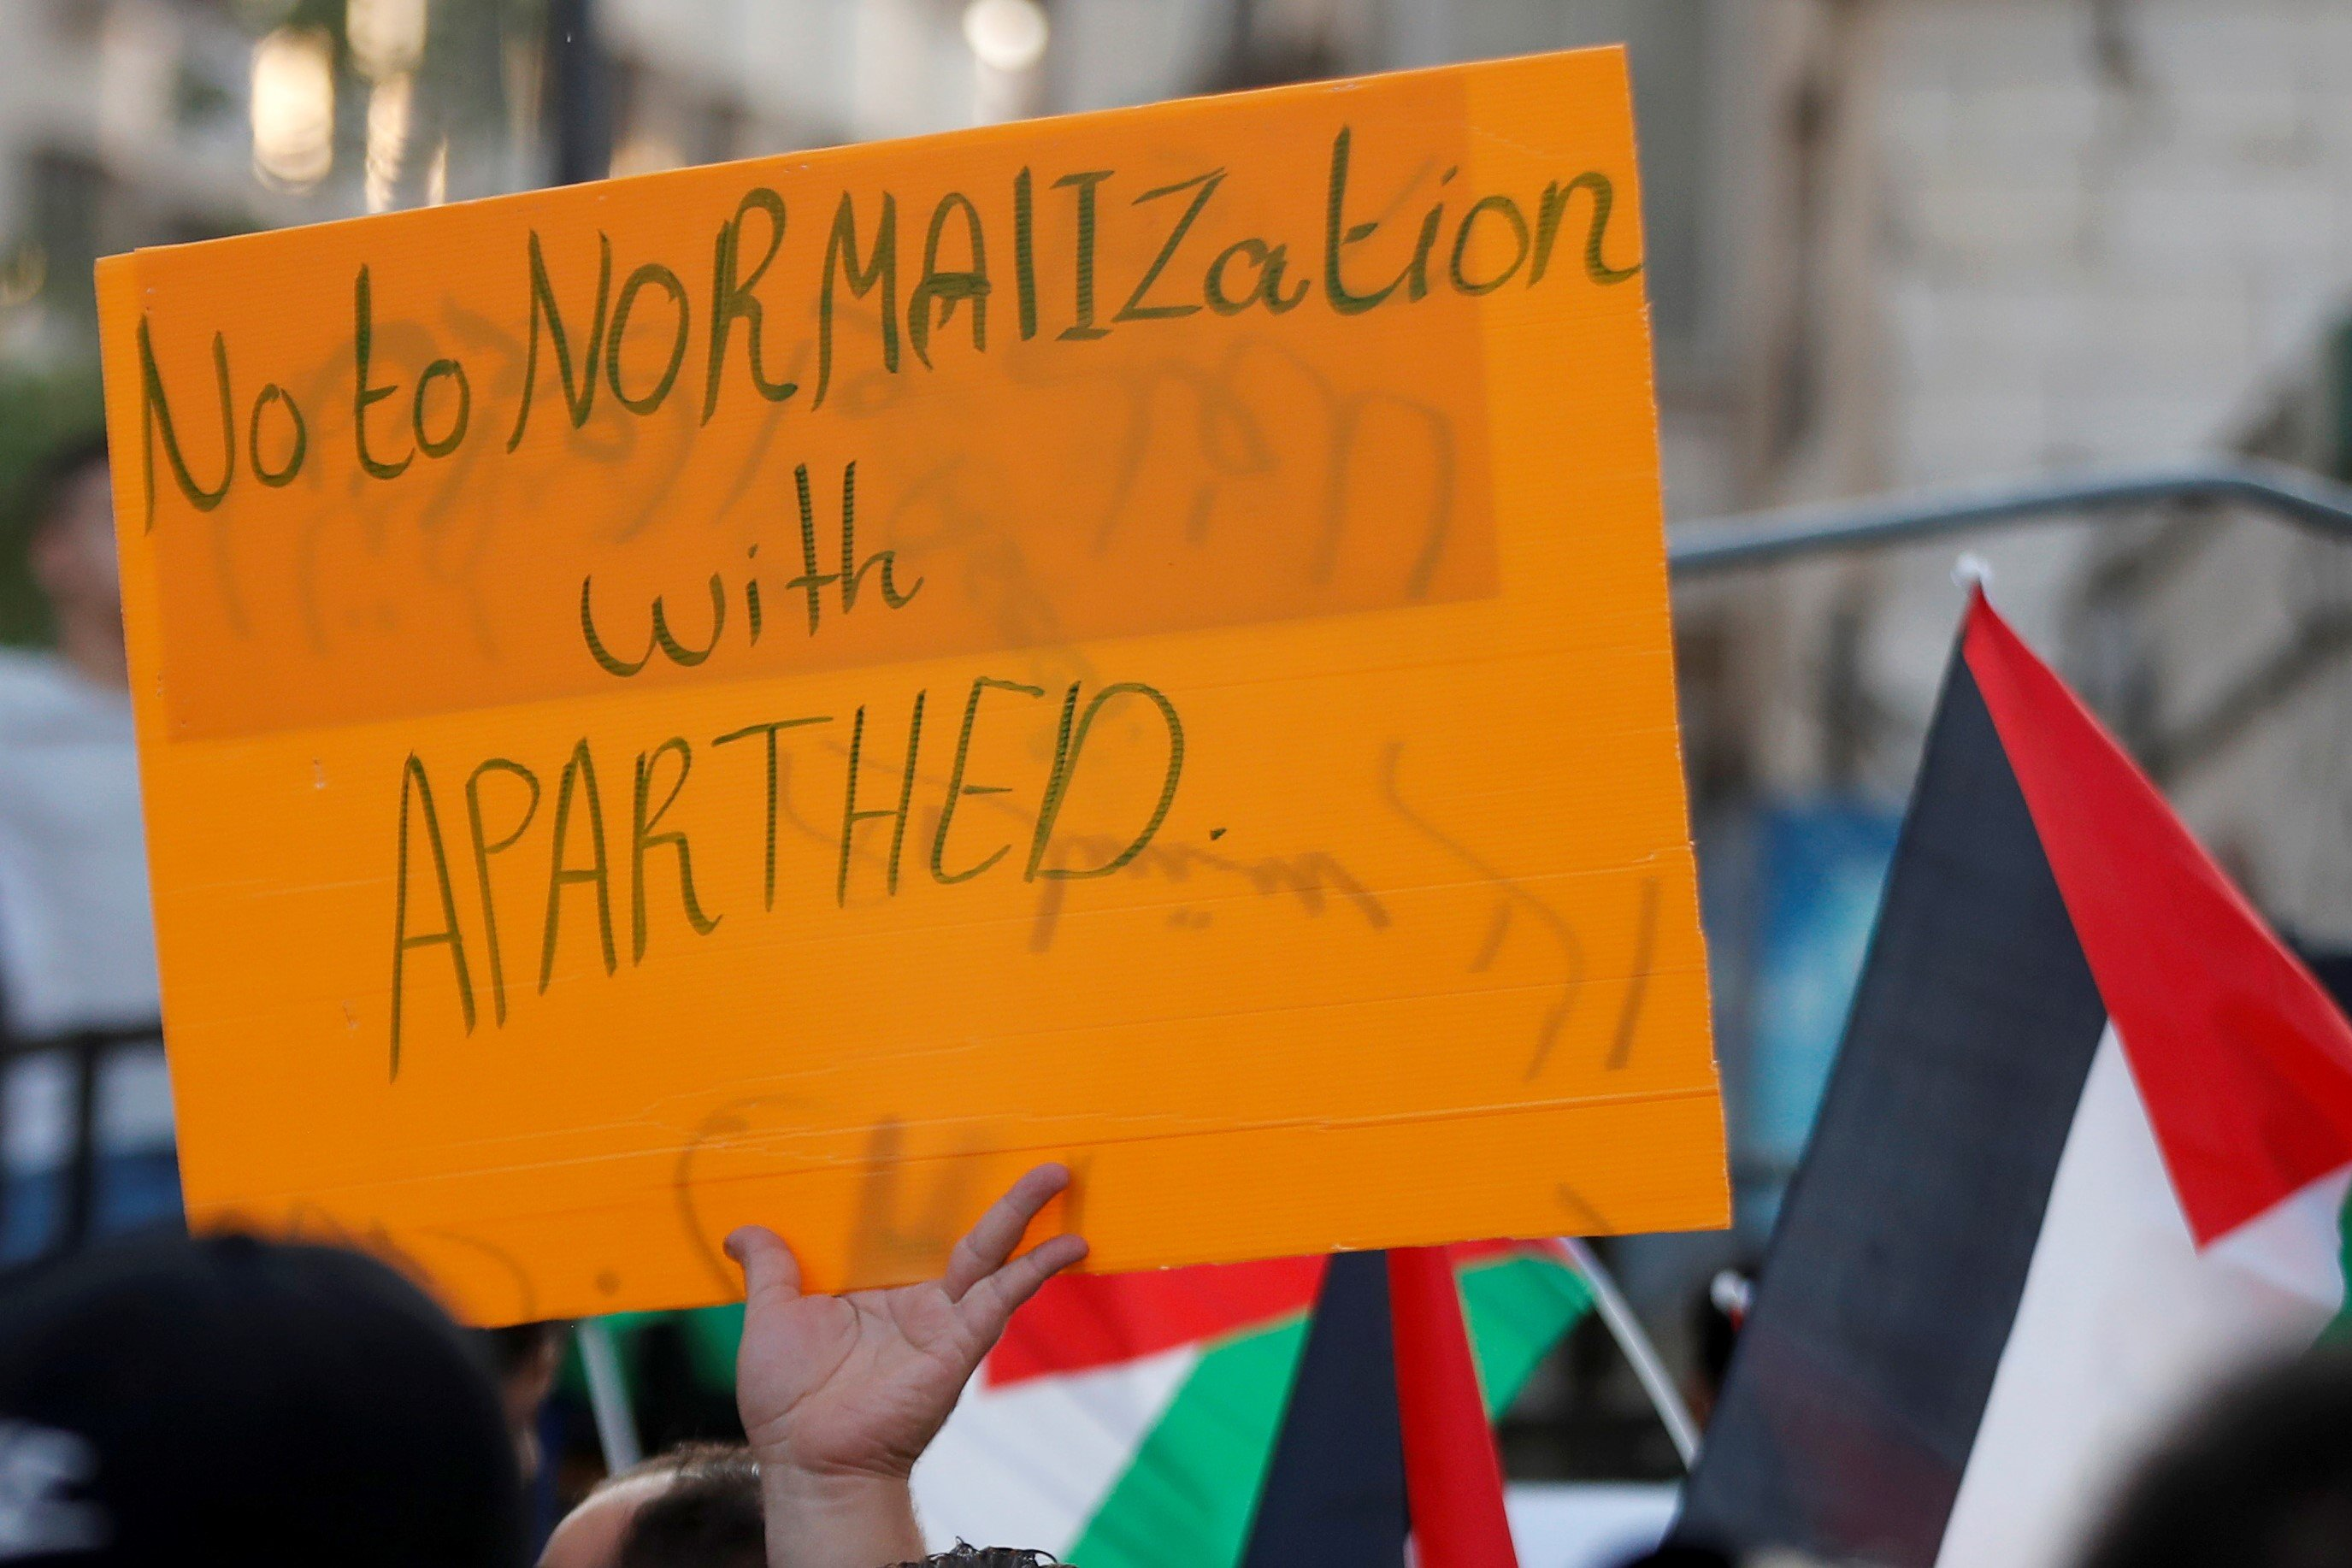 A Palestinian demonstrator holds a sign during a protest against the United Arab Emirates and Bahrain's deal with Israel to normalise relations, in Ramallah in the Israeli-occupied West Bank September 15, 2020